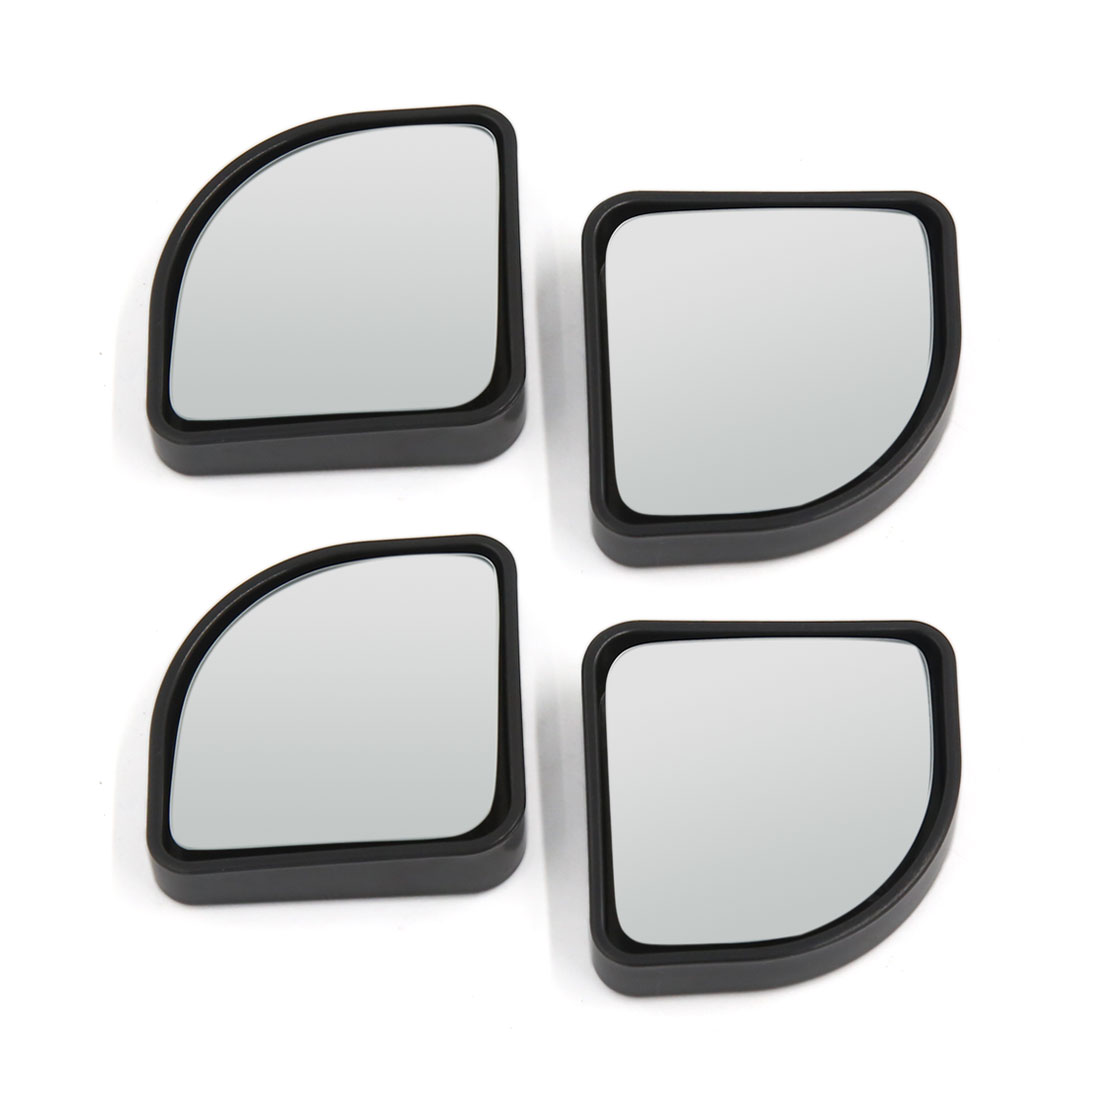 Universal Fits Car Wide Angle Convex Rearview Blind Spot Mirror Black 4pcs